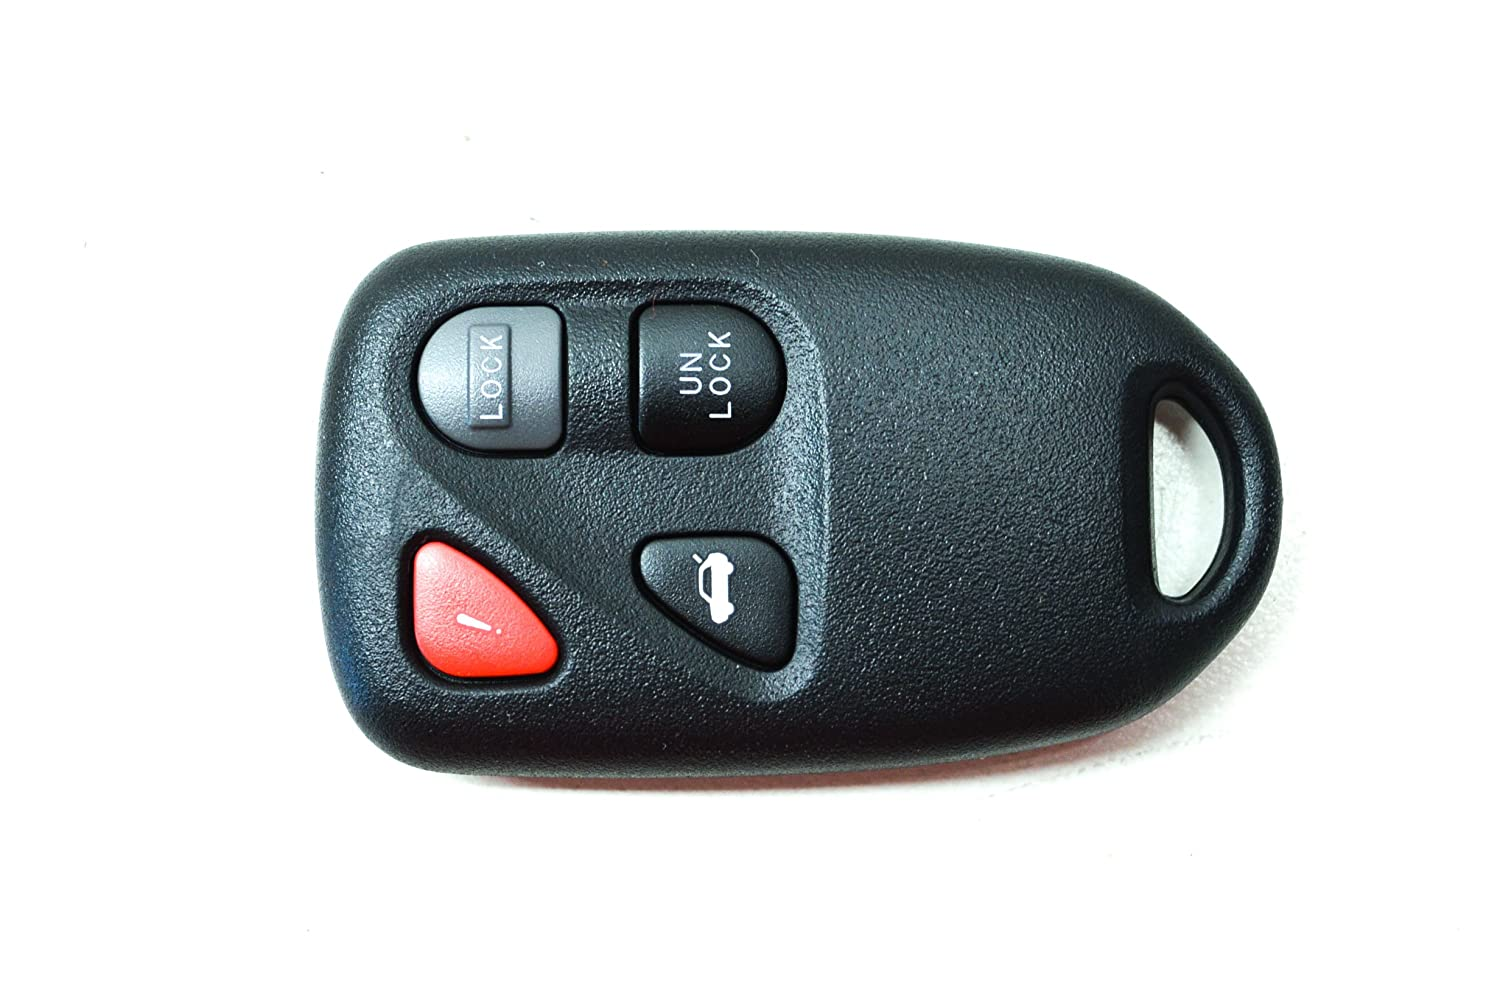 Mazda TC86-67-5RYC Remote Control Transmitter for Keyless Entry and Alarm System